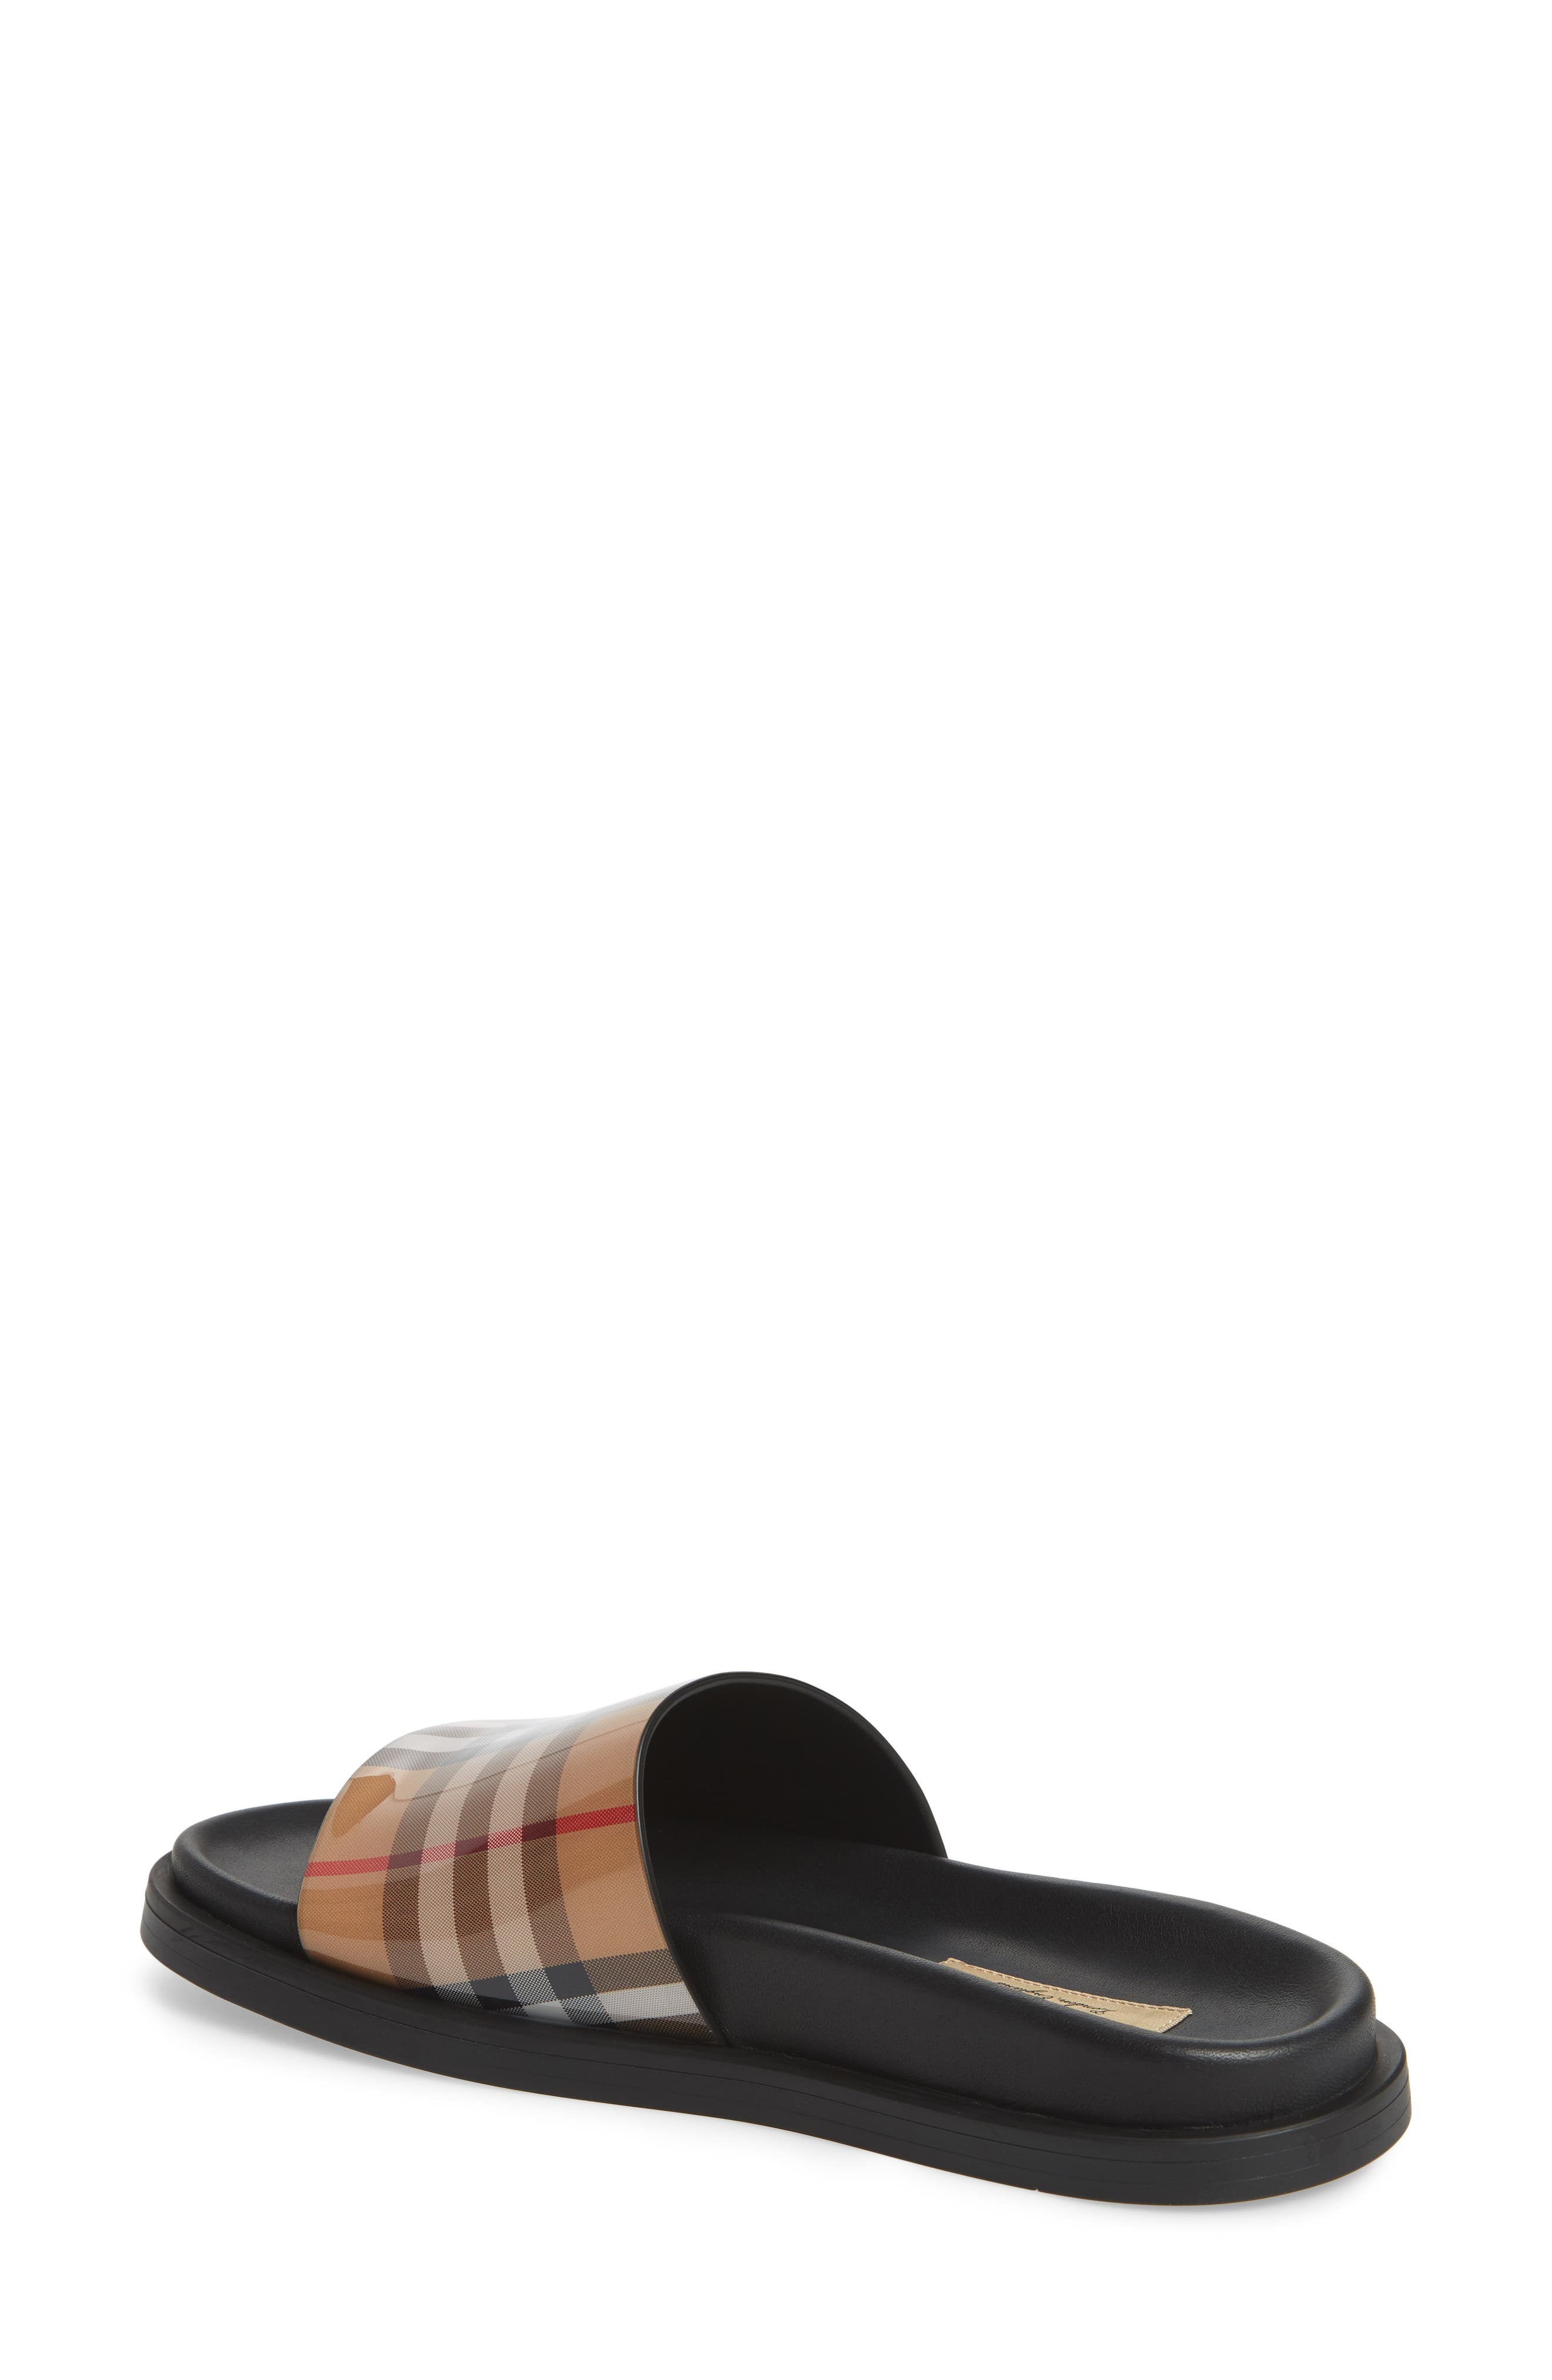 BURBERRY,                             Vintage Check Slide Sandal,                             Alternate thumbnail 3, color,                             250